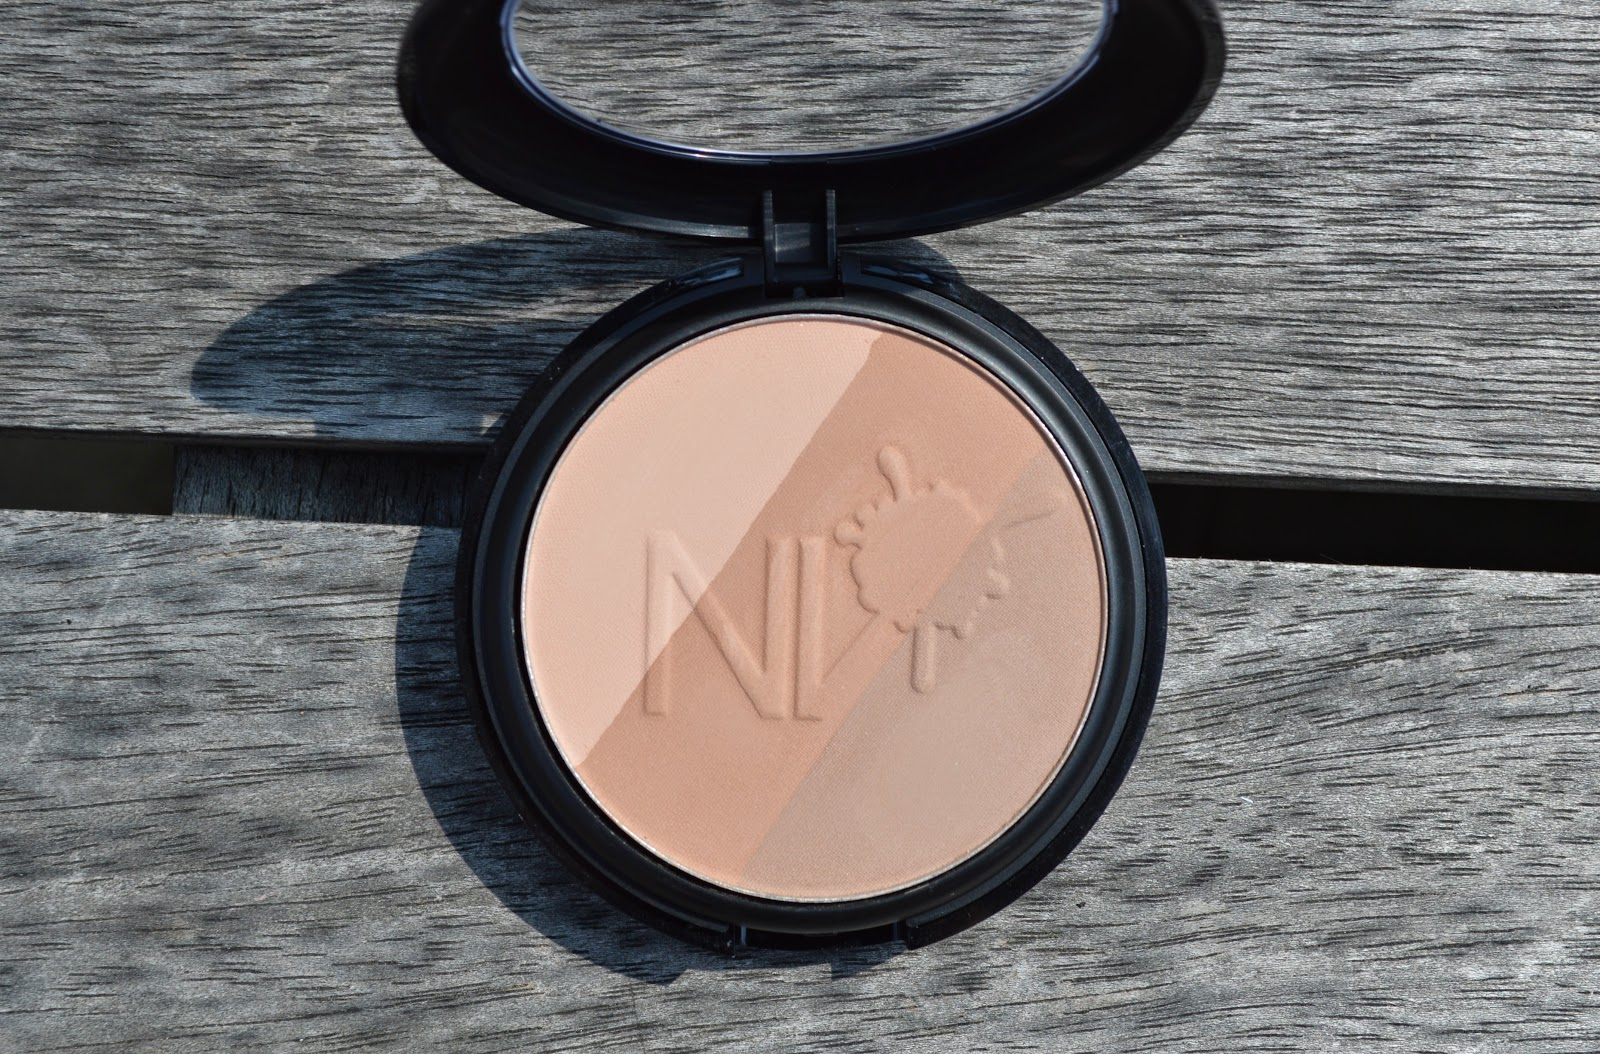 NV Colour Bronzer in Fair